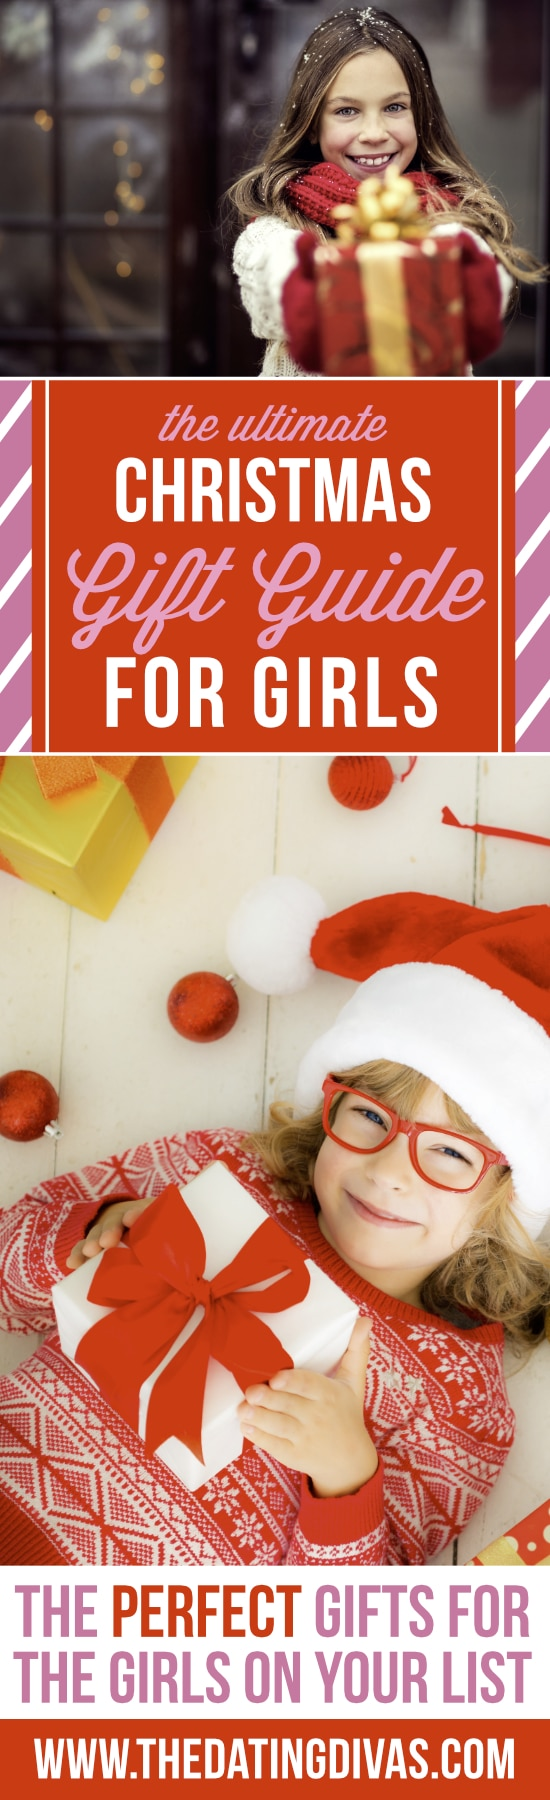 Christmas Gift Guide for Girls - Gift Ideas from The Dating Divas